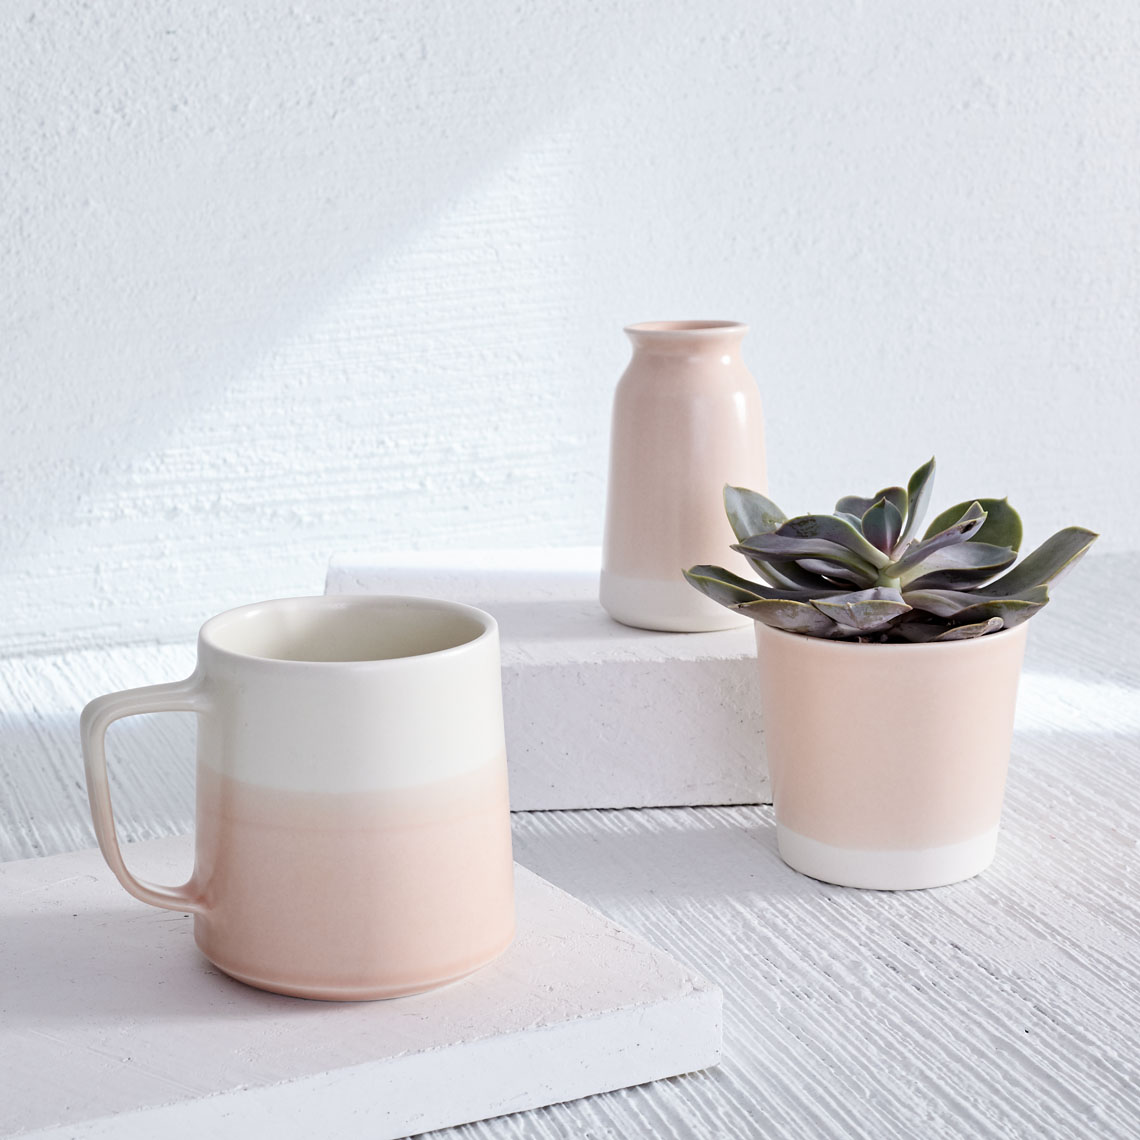 pip-simple-local-paper-clay-mug-milk-jug-planter-peach-cream-color-story-hl17-112